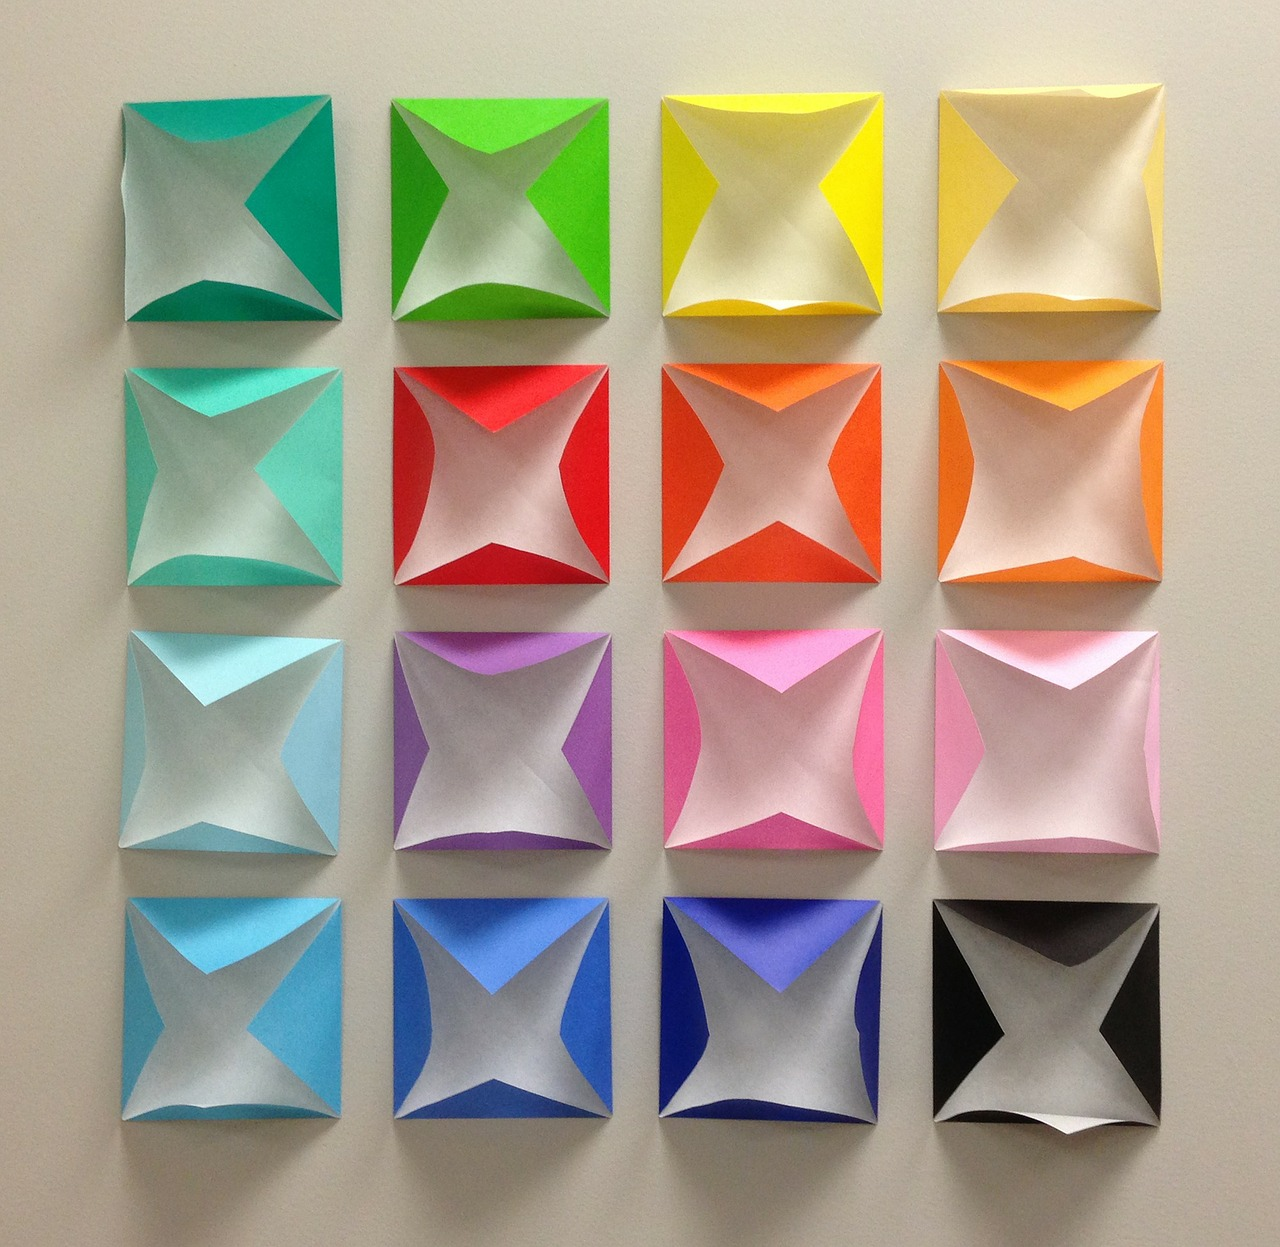 Japanese origami paper how to choose the right paper from japan blog - Origami origami origami ...